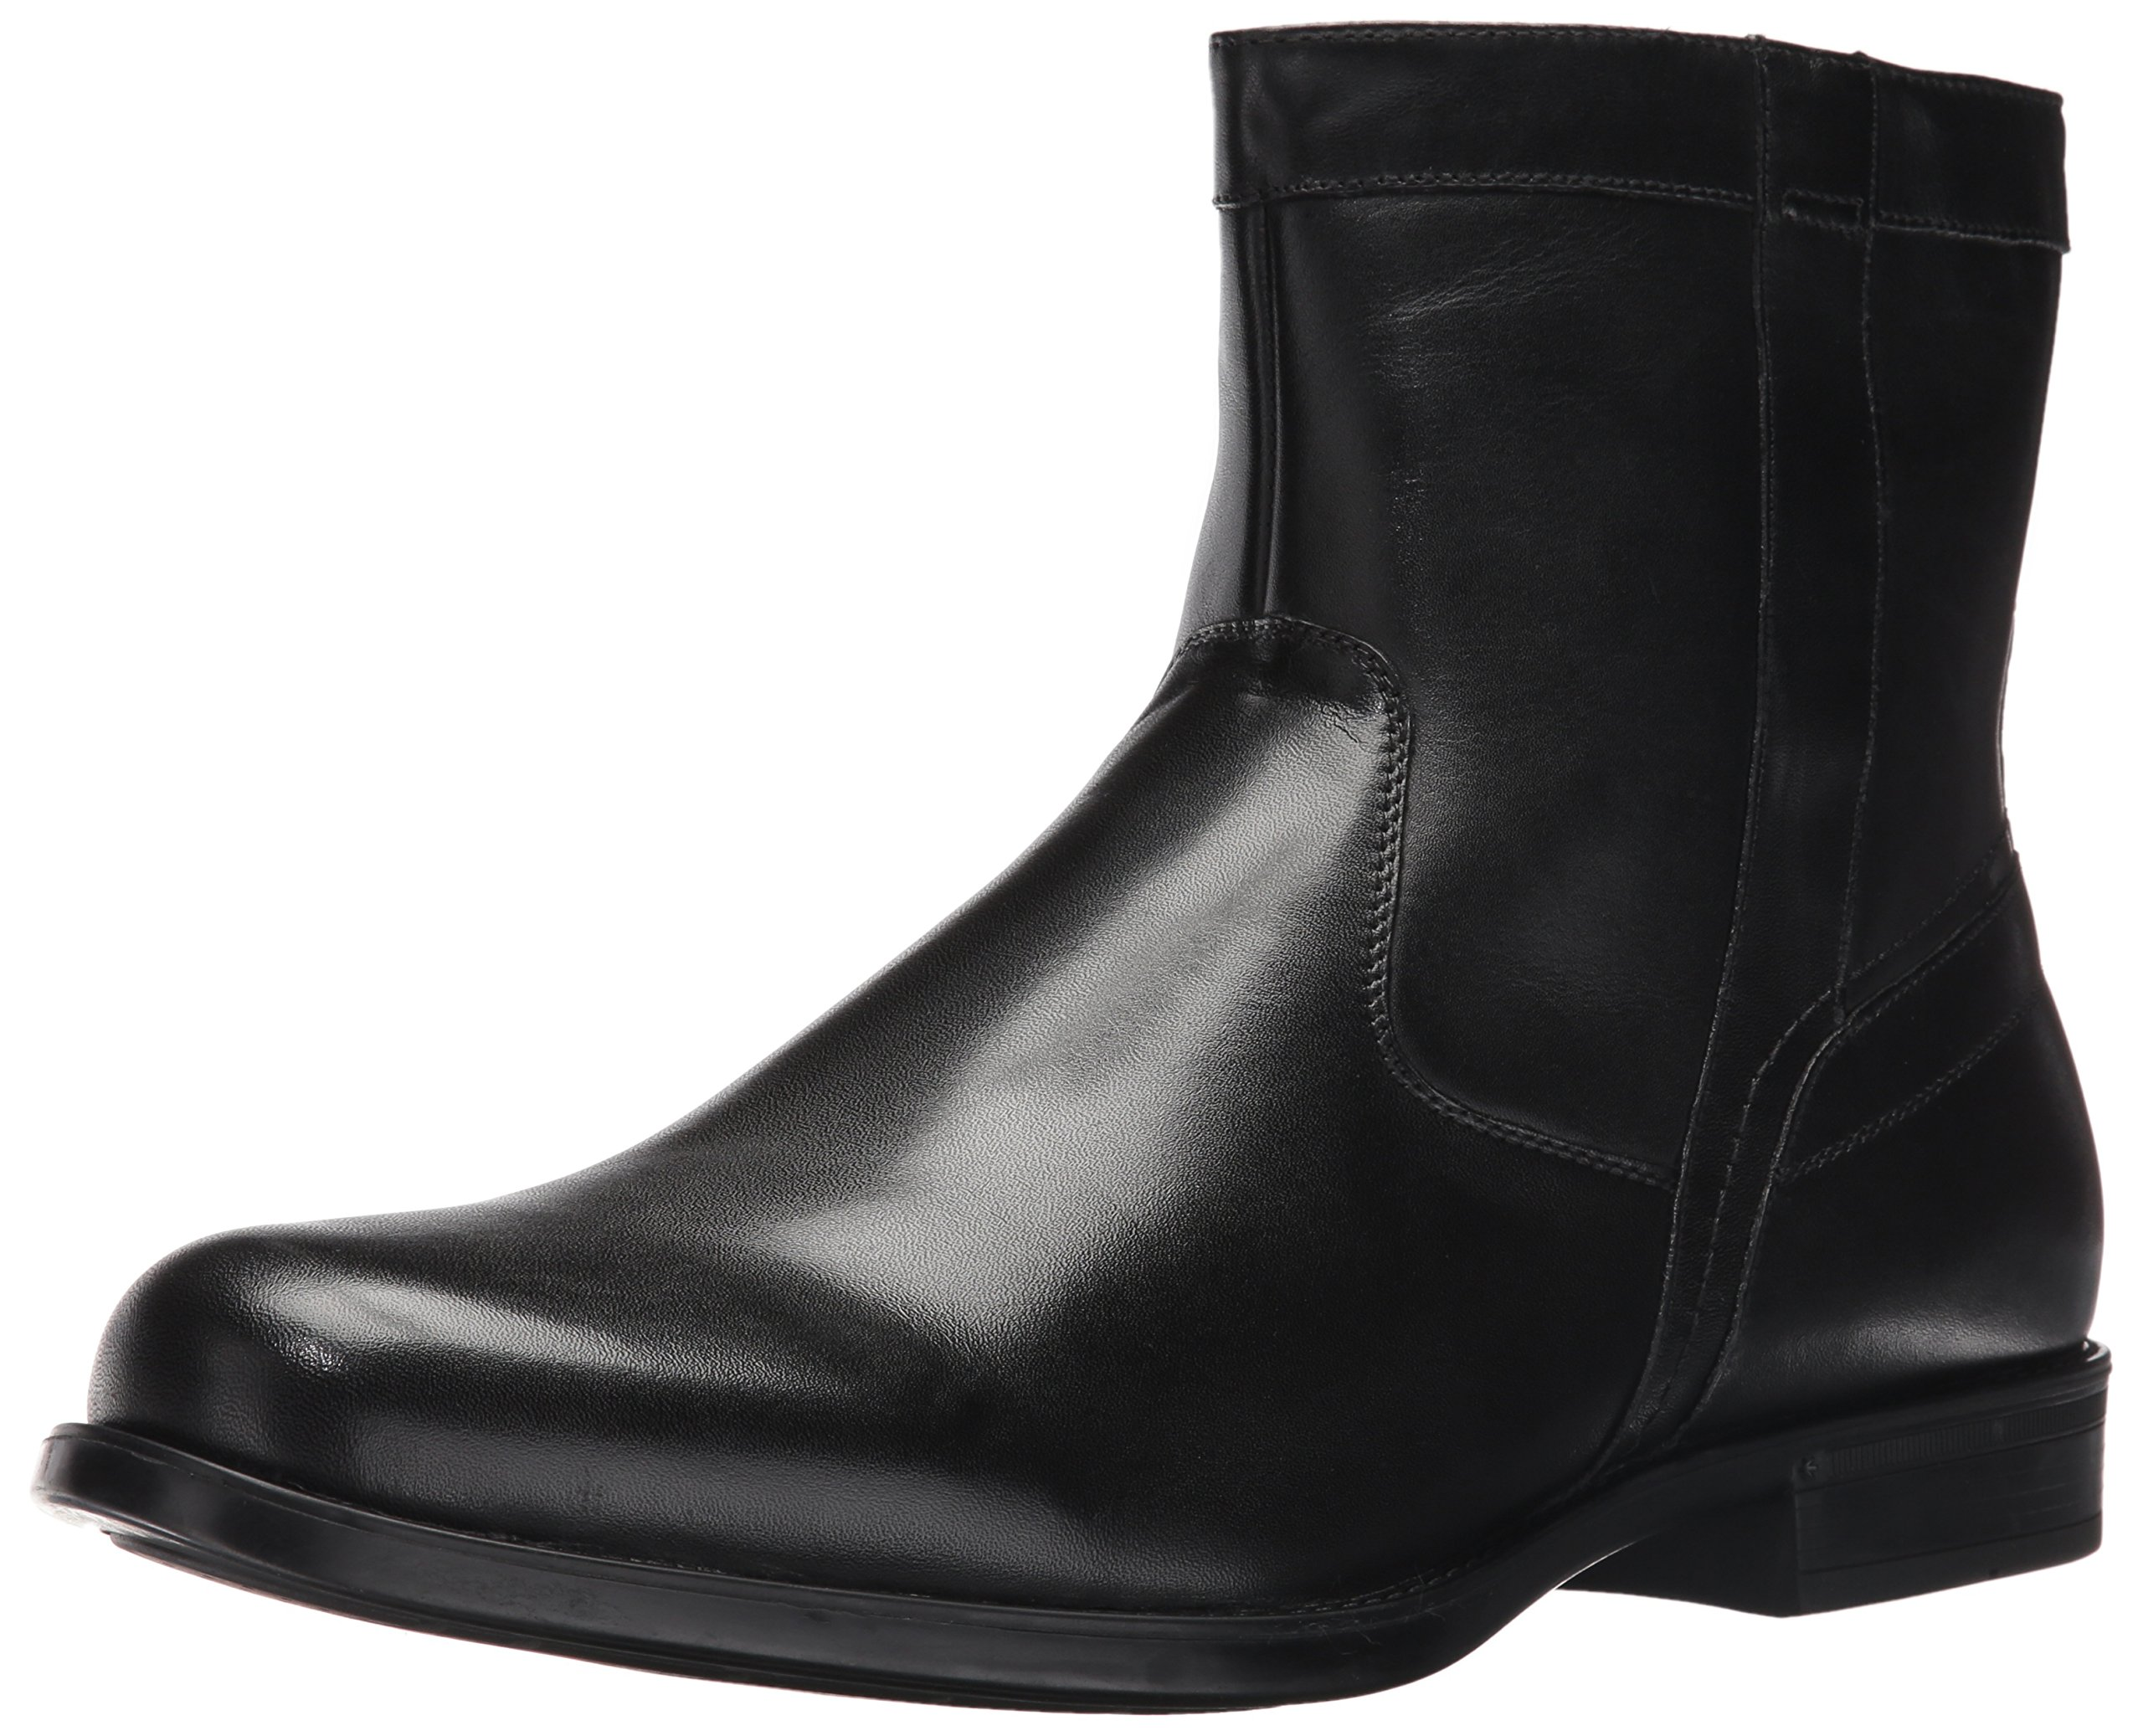 Florsheim Men's Medfield Plain Toe Zip Fashion Boot, Black, 10 D US by Florsheim